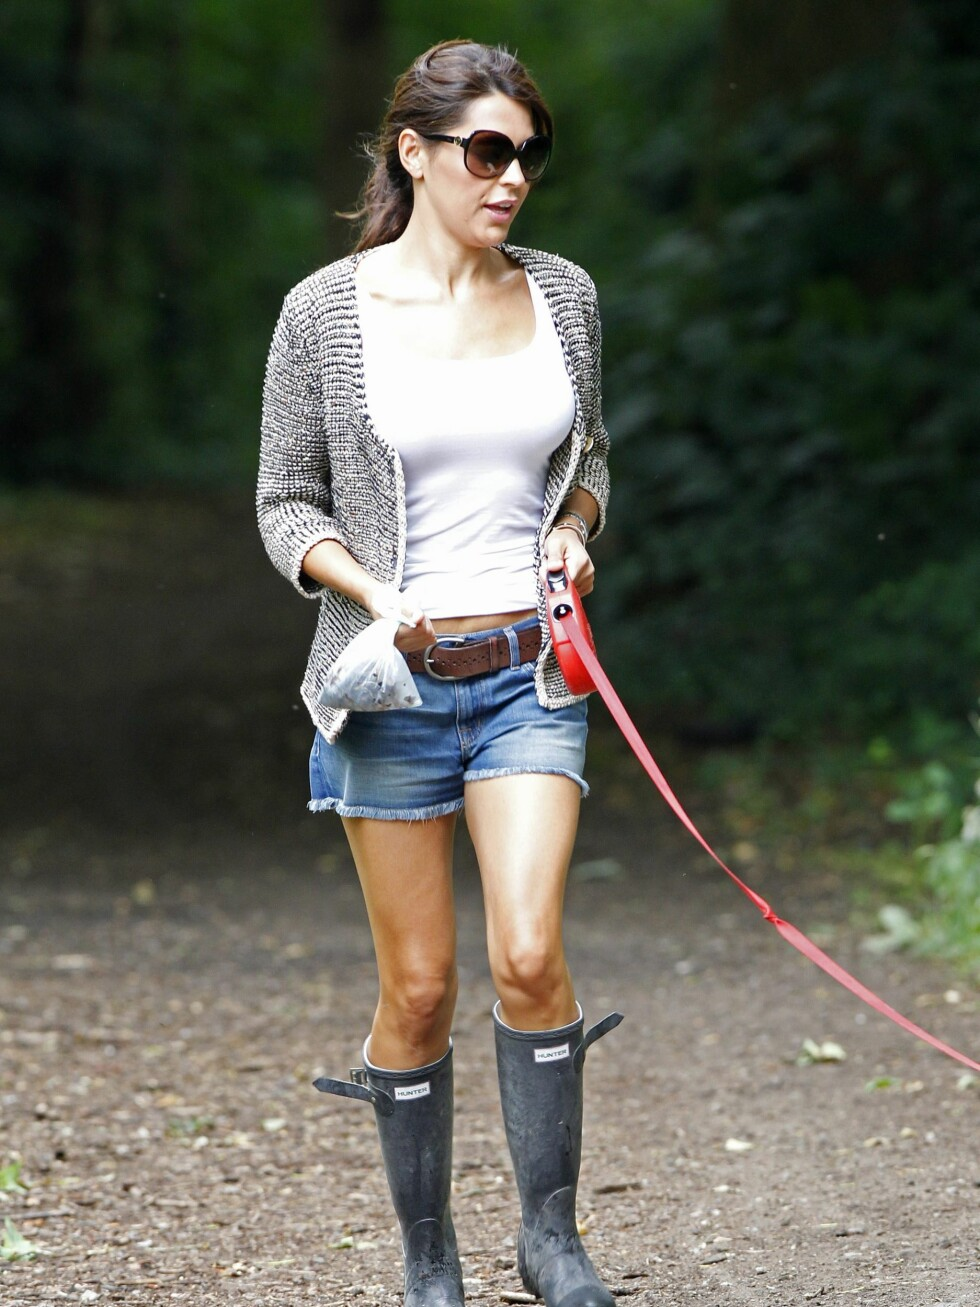 <strong>EXCLUSIVE:</strong> Whilst all the other WAGS return from their short visit to South Africa, Danielle Lineker, wife of ex-footballer and BBC presenter, Gary Lineker, dons a pair of wellingtons to take her labrador for a walk in the woods near her South London home.  Pictured: Danielle Lineker  Ref: SPL190758  290610   EXCLUSIVE Picture by: Andy Robinson / Splash News  Splash News and Pictures Los Angeles:310-821-2666 New York:212-619-2666 London:870-934-2666 photodesk@splashnews.com  *** Local Caption *** World Rights Foto: All Over Press